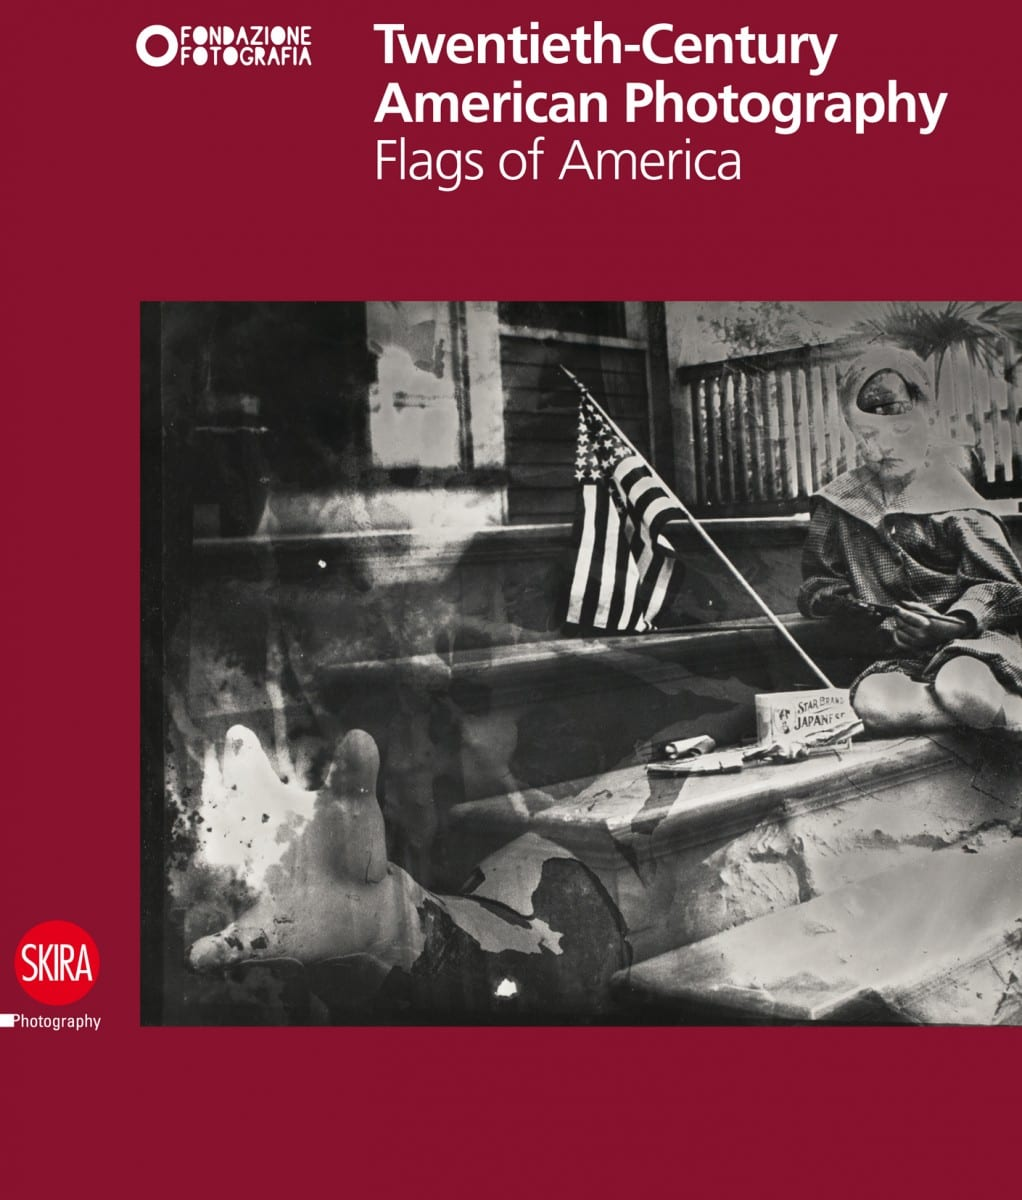 Twentieth-Century American Photography: Flags of America, Hardcover, 136 pages, September 2013